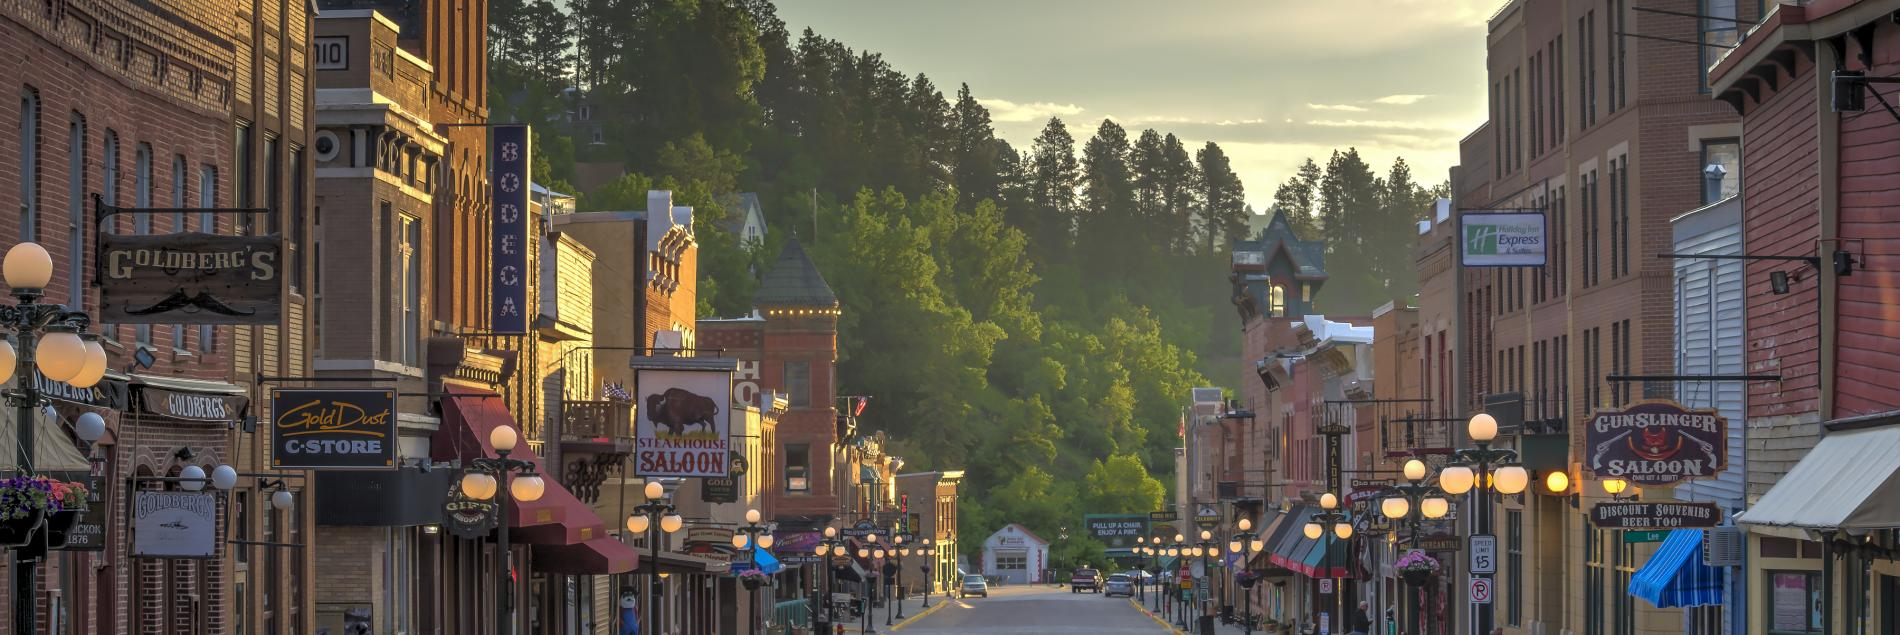 Deadwood Chamber of Commerce & Visitor's Bureau